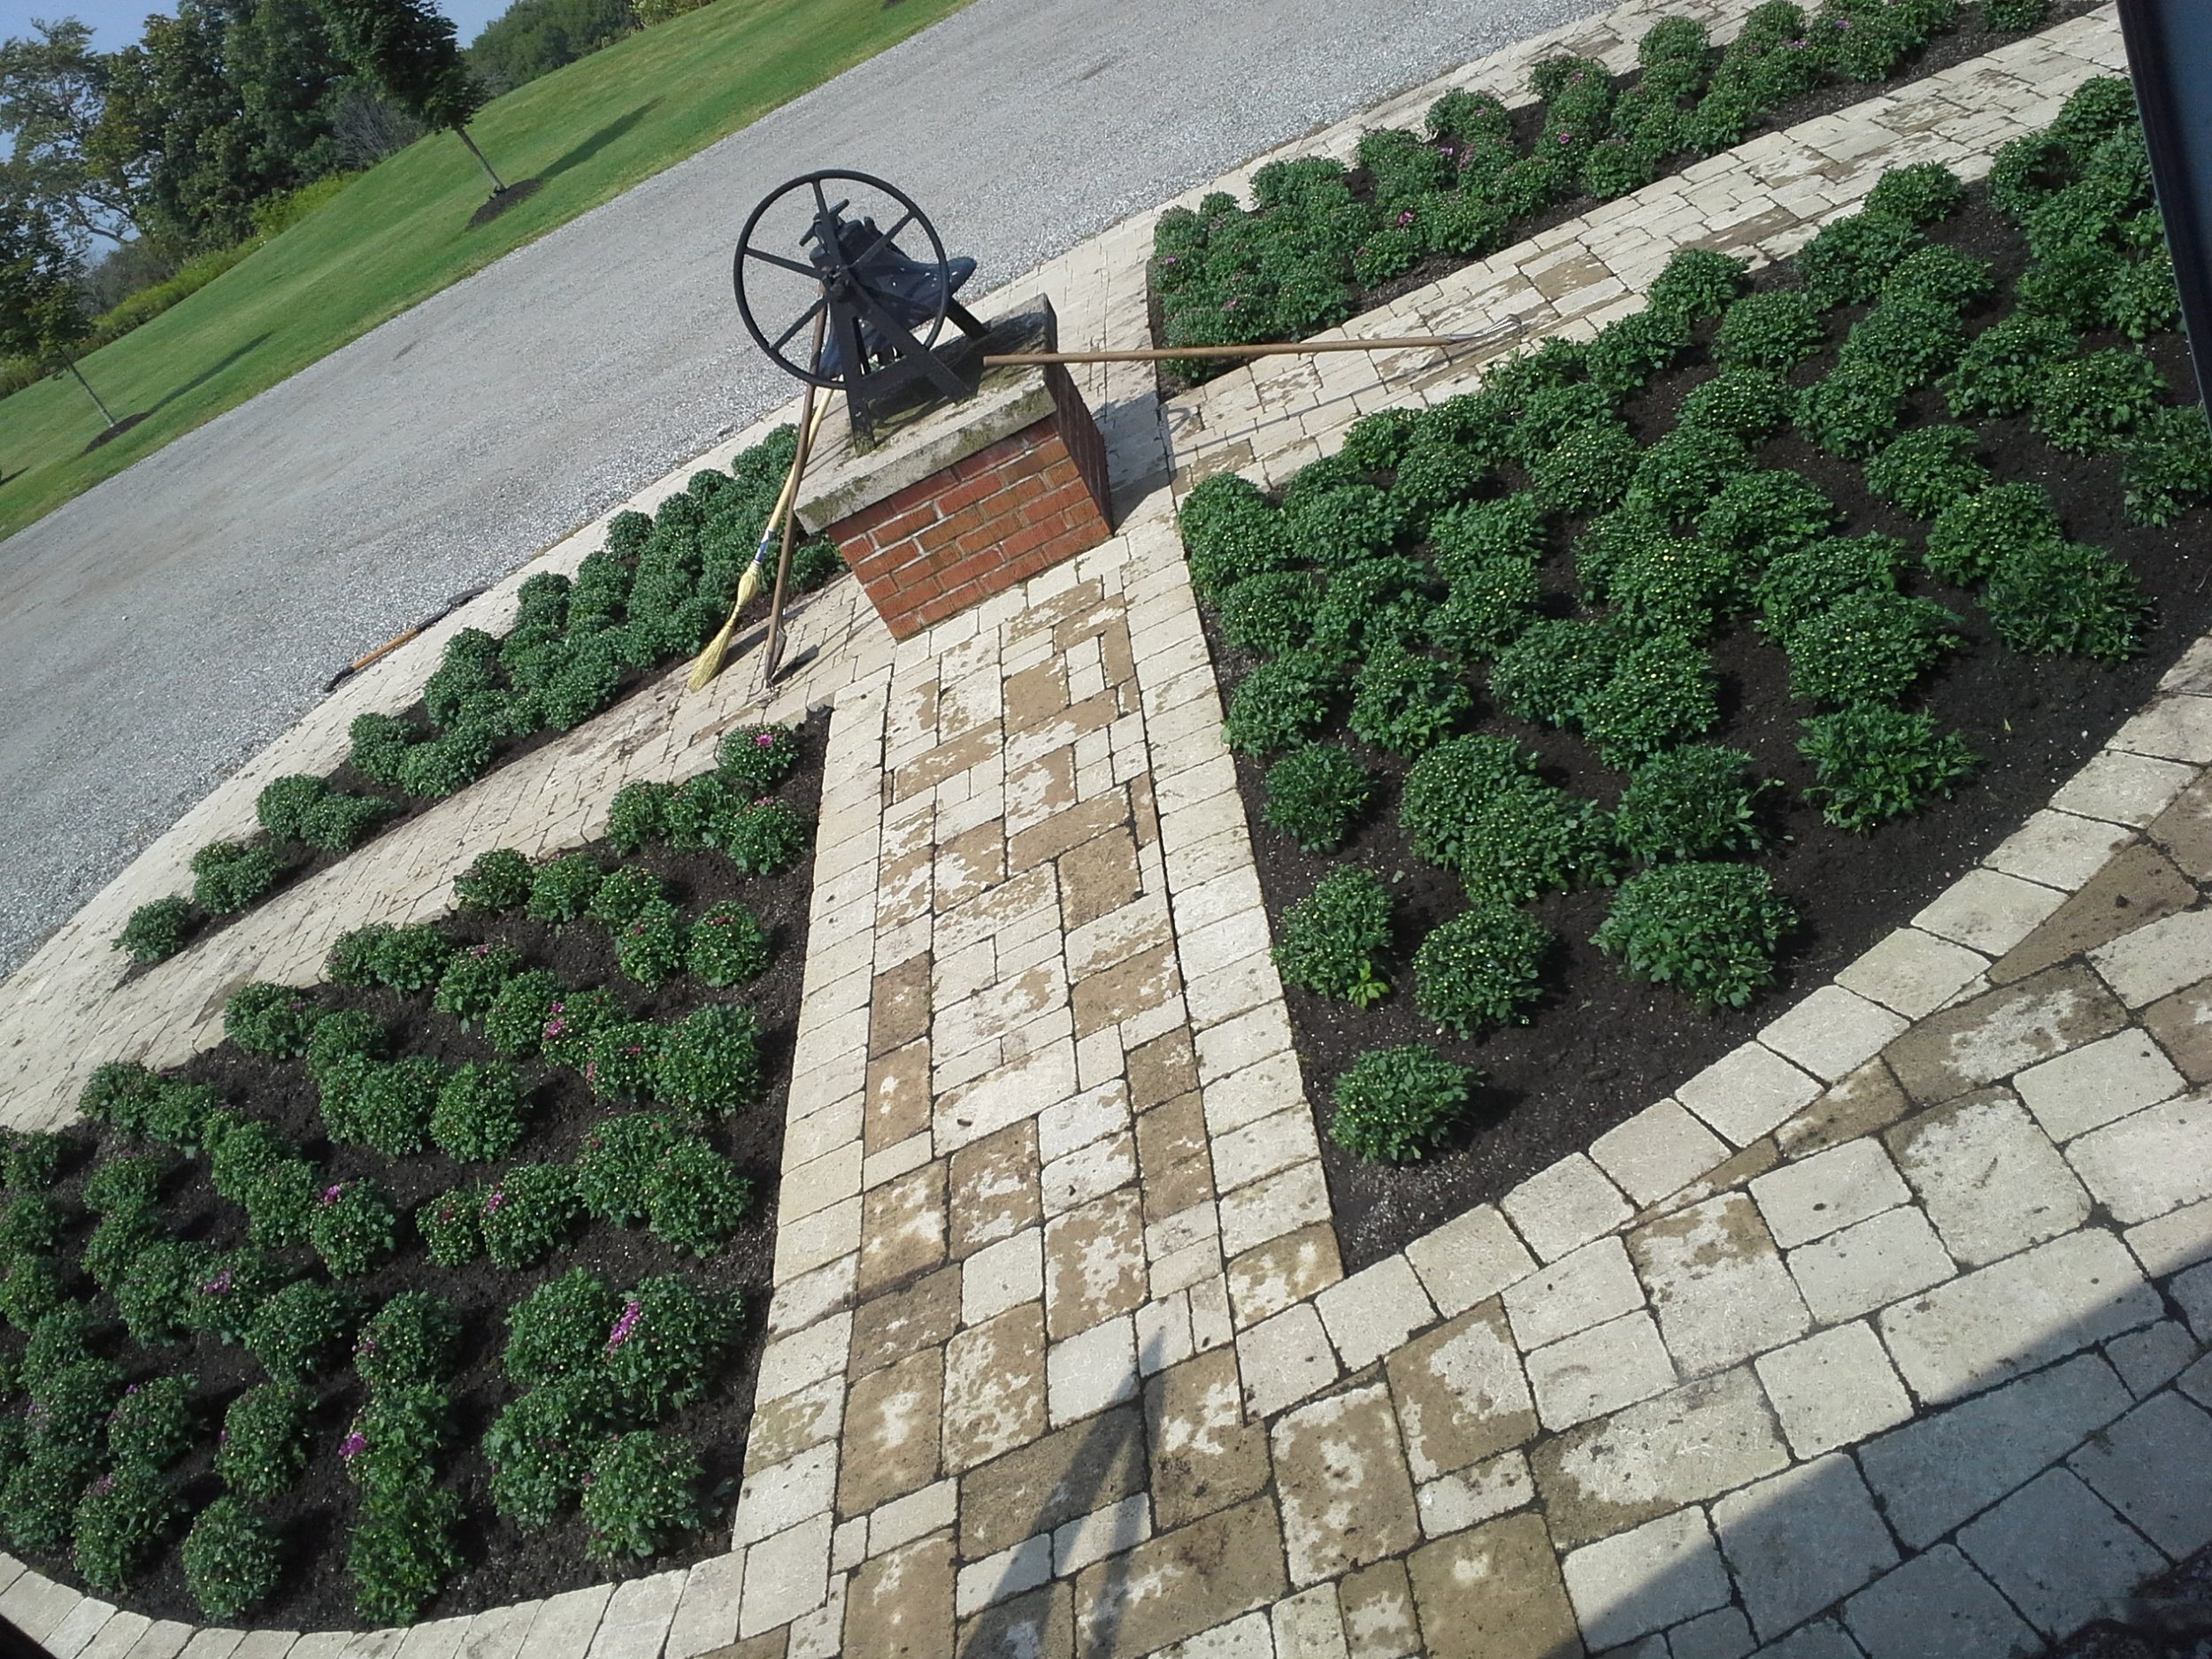 TRANSFORMING LIVES - We want everyone to take notice and appreciate the beauty of our clients' well-groomed properties. Every activity is a direct reflection of our professionalism and the way we do business.Our clients appreciate and value our expertise, premium quality and specialized services. We look forward to developing a relationship with you that will meet all of your fine garden and horticultural needs.We specialize in outstanding garden care. Proud members of Landscape Ontario, we have a network of trusted colleagues who are specialists in landscape architecture, design, lawn care, lighting, irrigation and arboriculture to compliment our services.